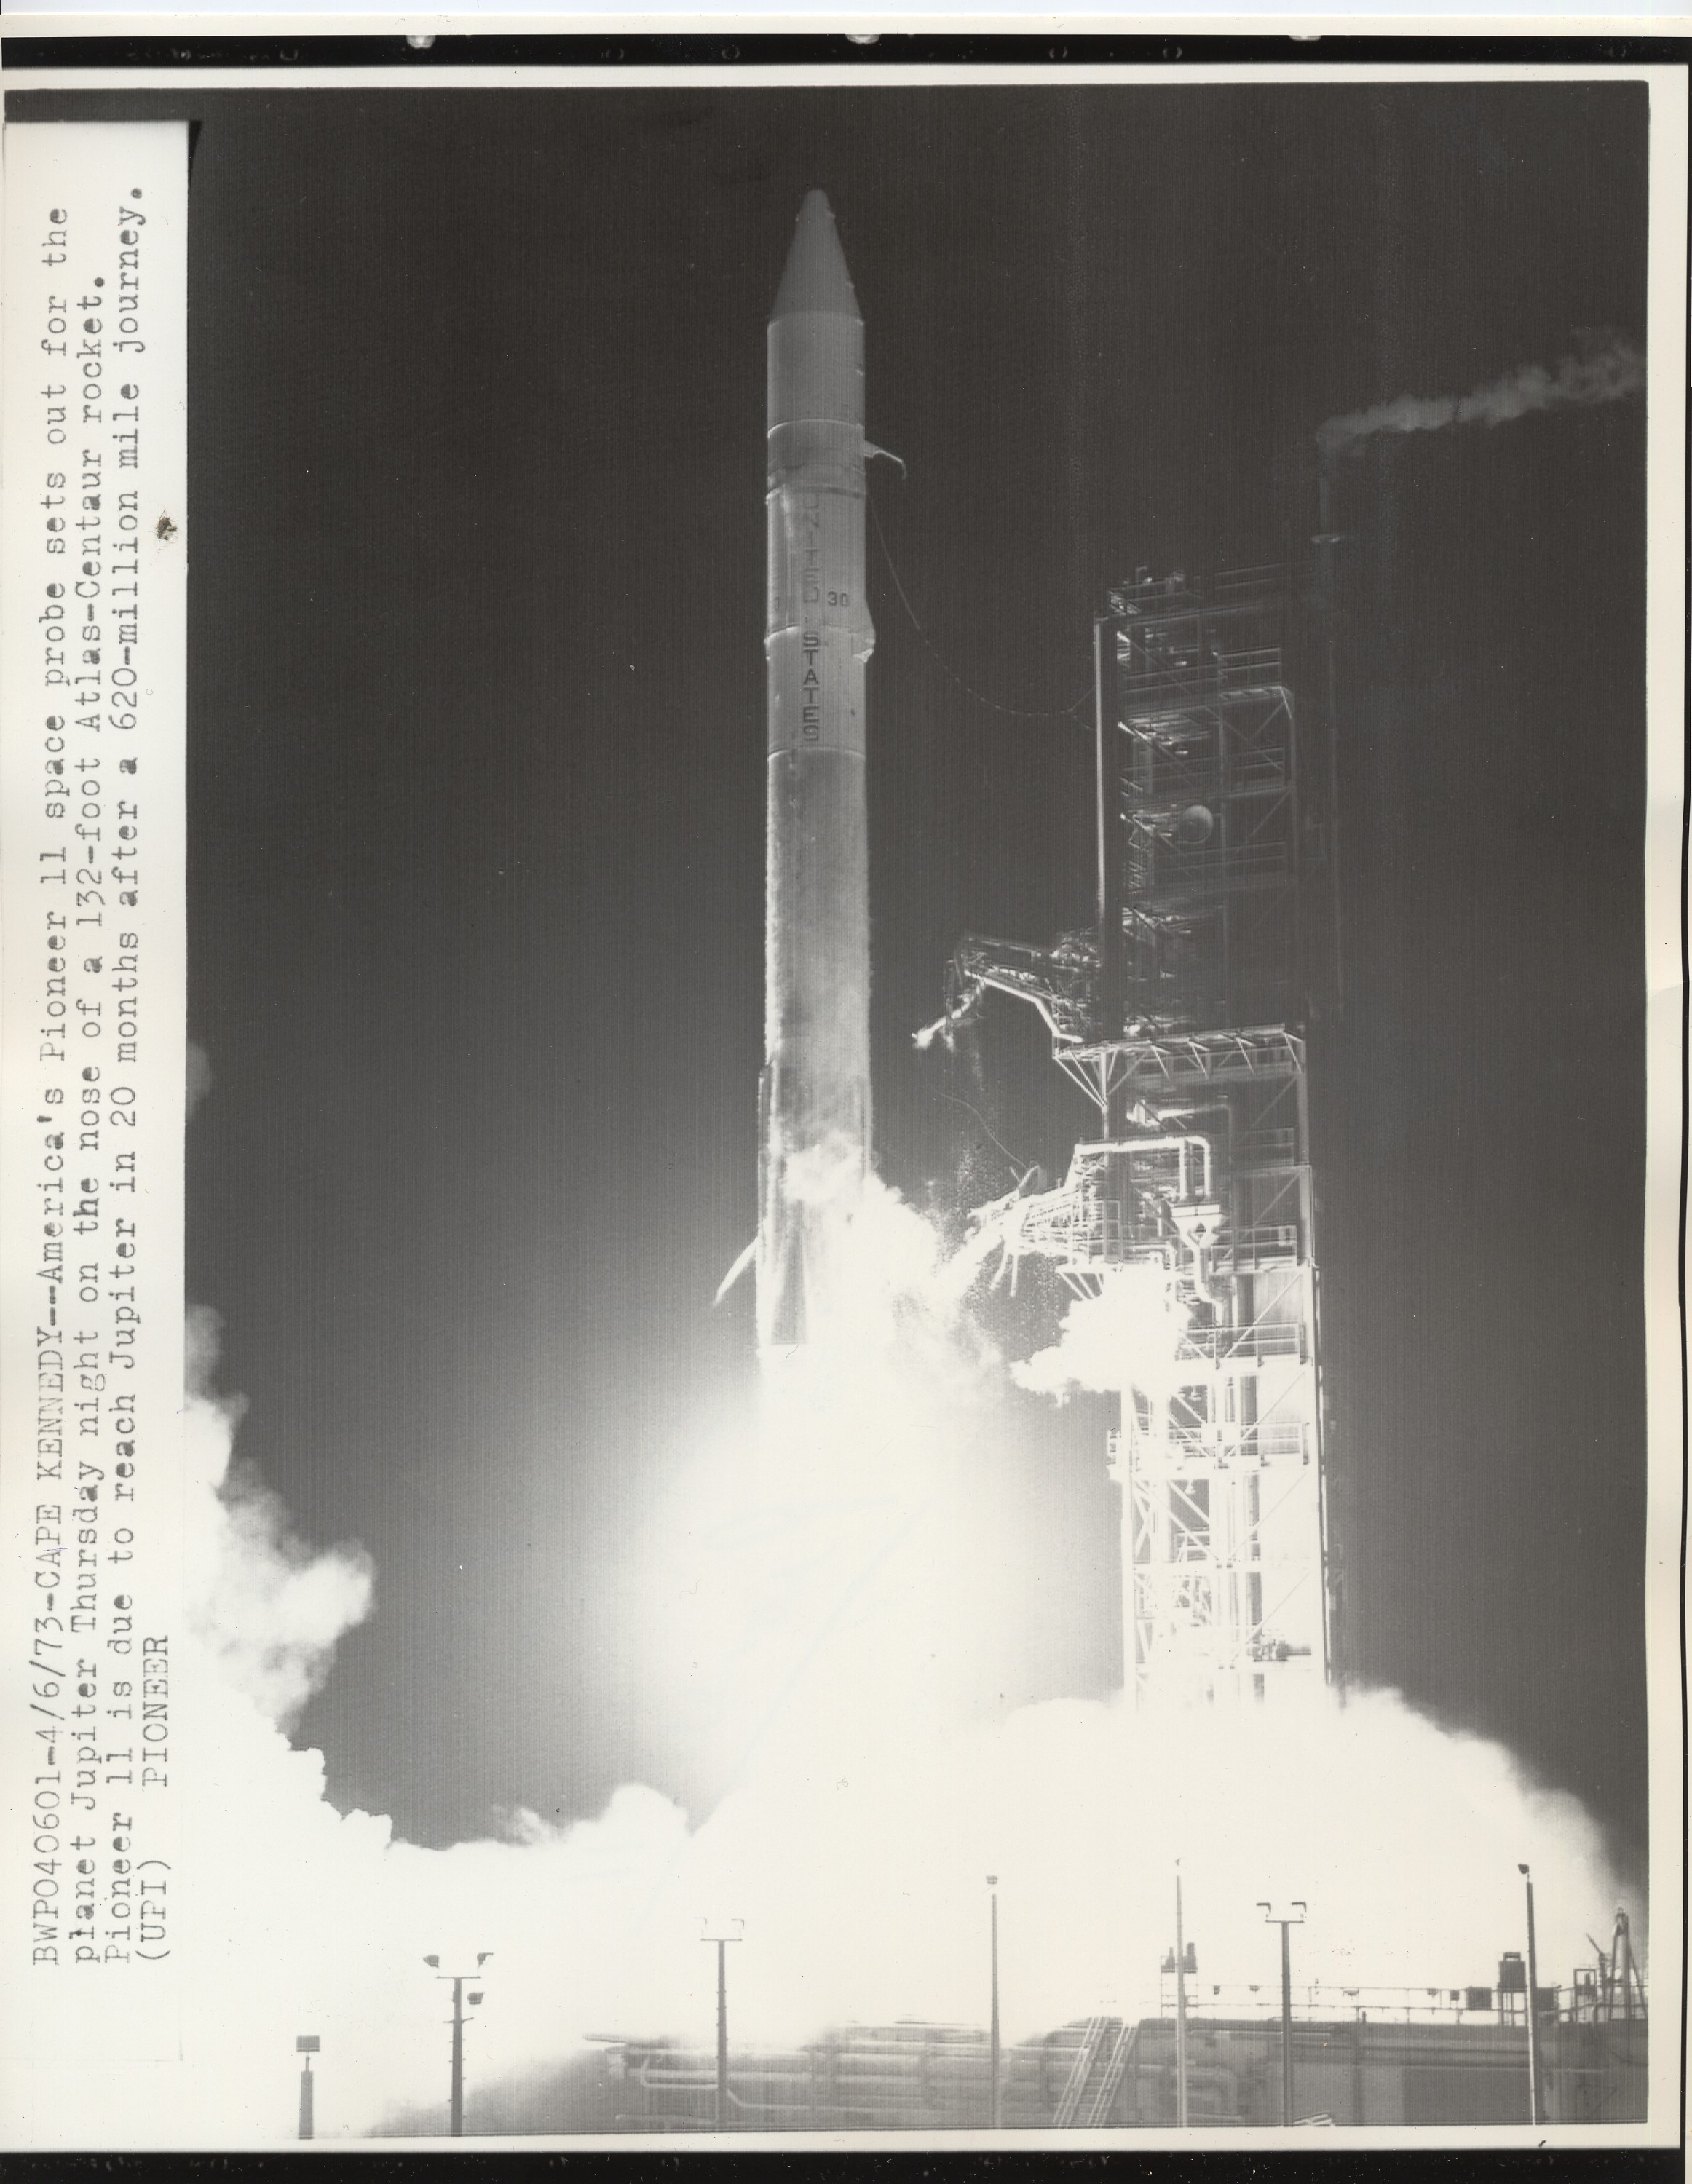 Pioneer 11 blast off, Cape Kennedy